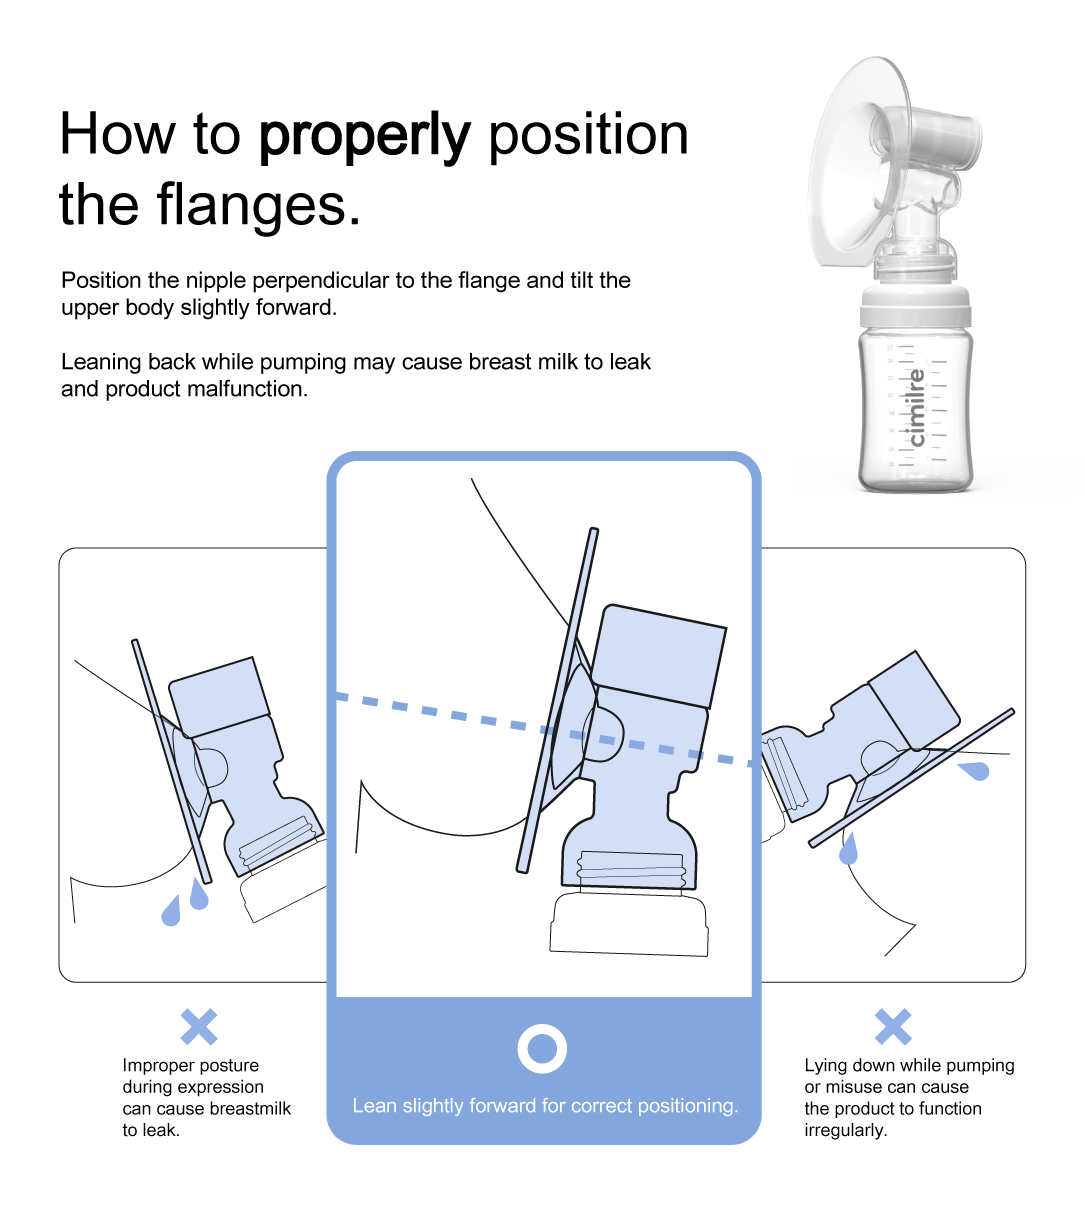 How to properly position the Free-T flanges